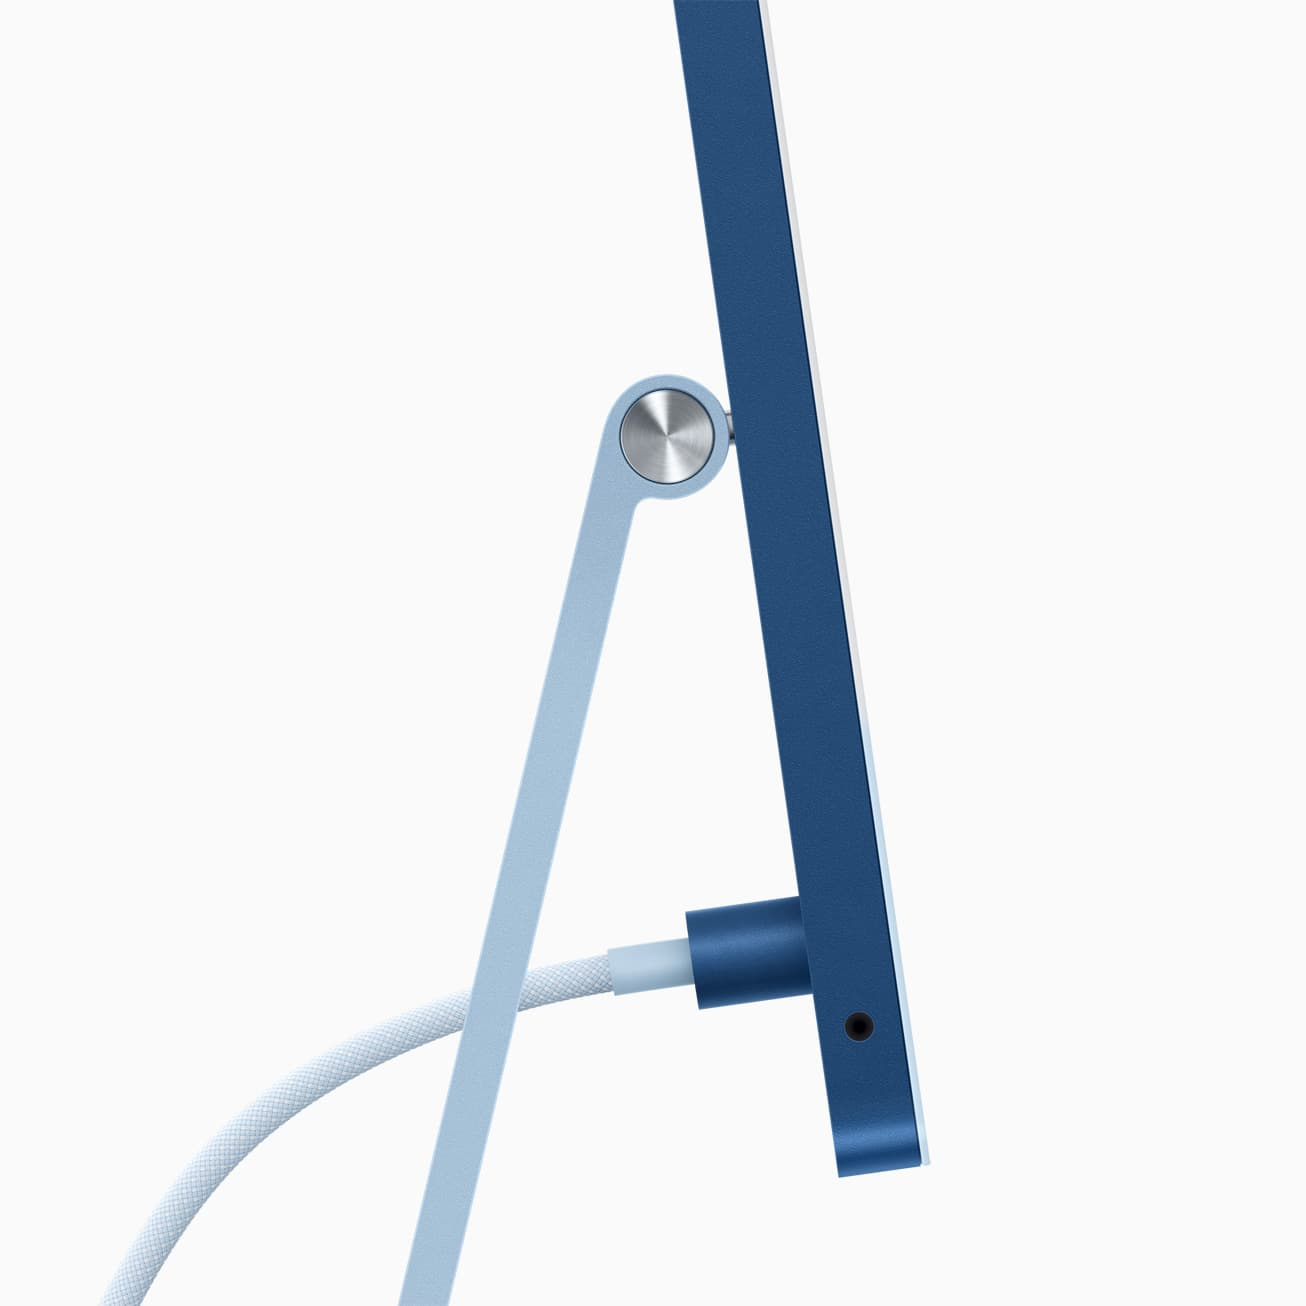 apple_new-imac-spring21_ps-blue-cord-connection